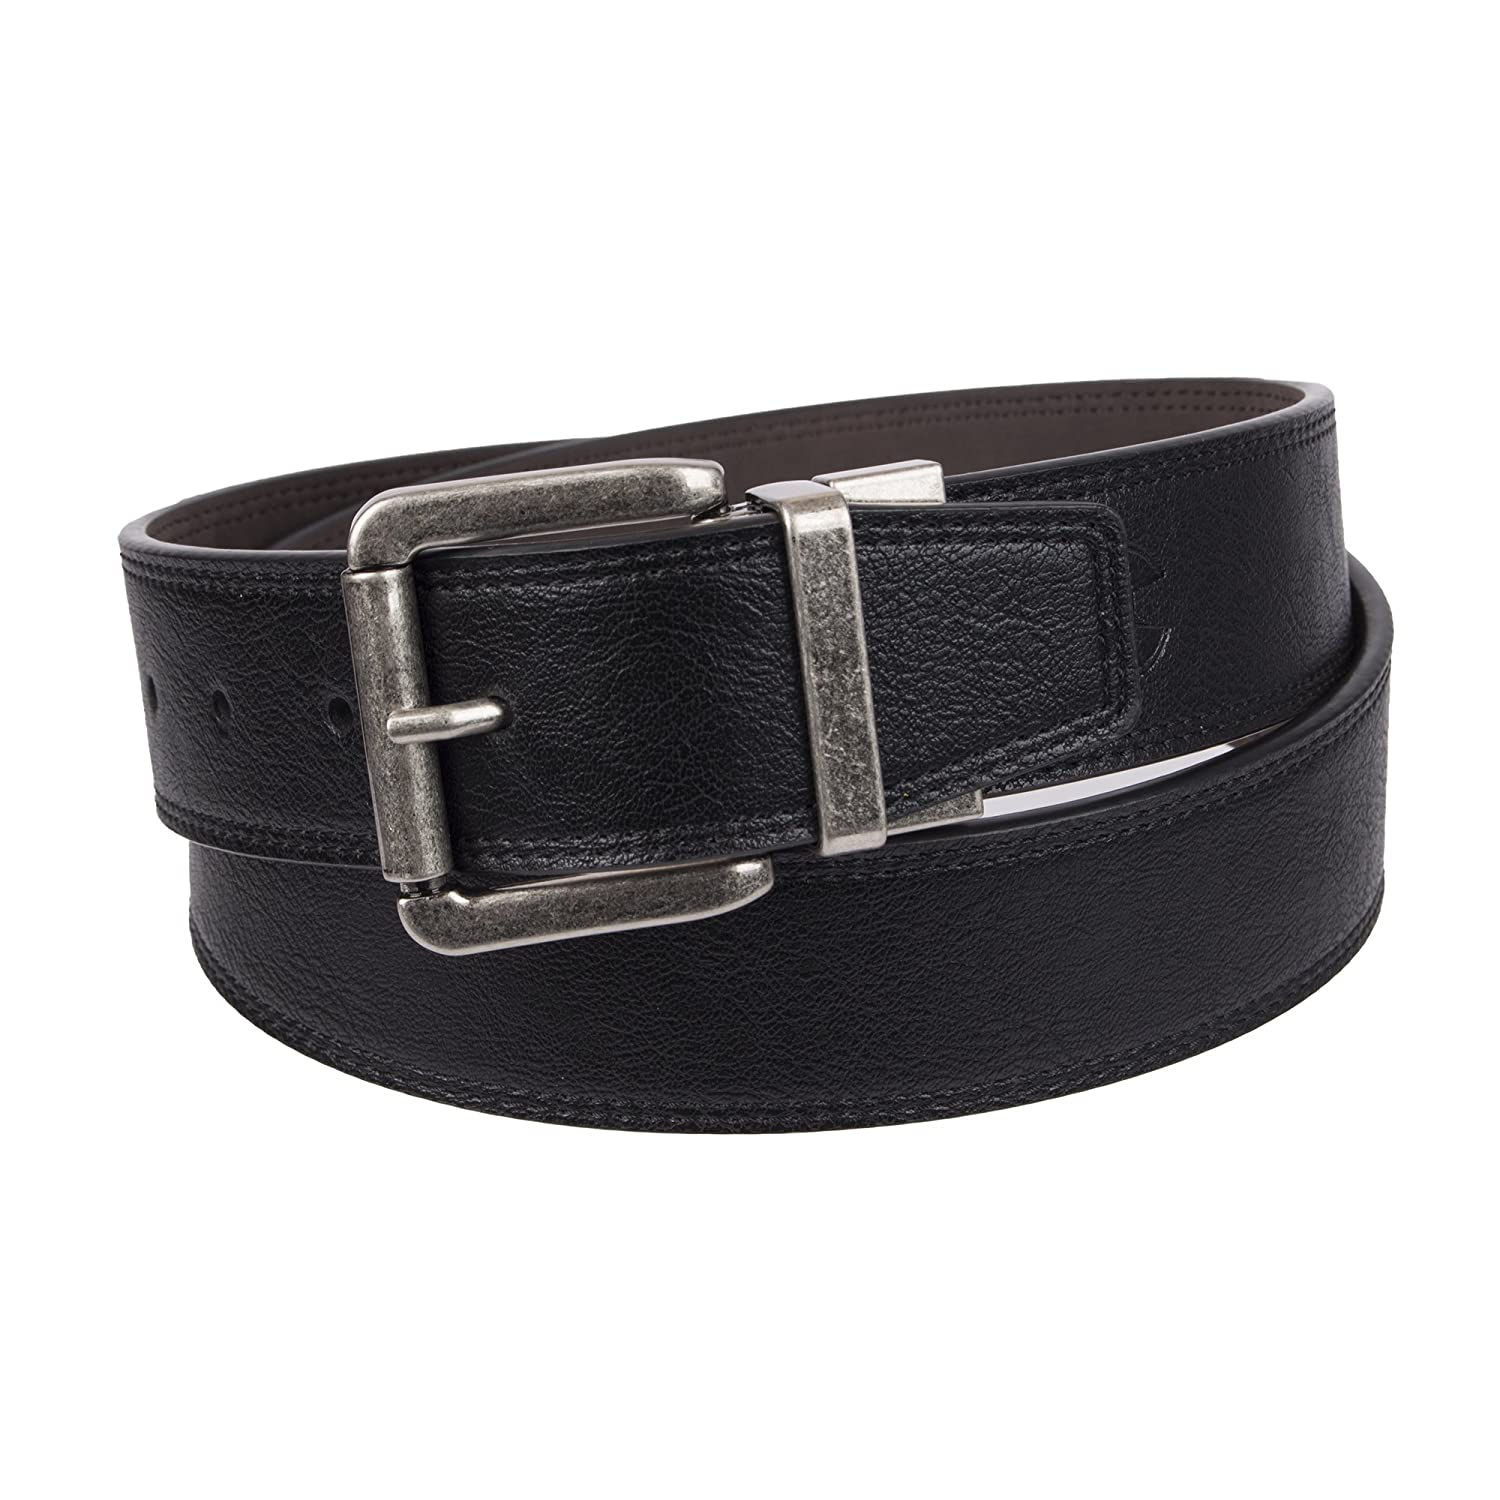 Weatherproof mens standard Casual Reversible Belt With Rotated Buckle